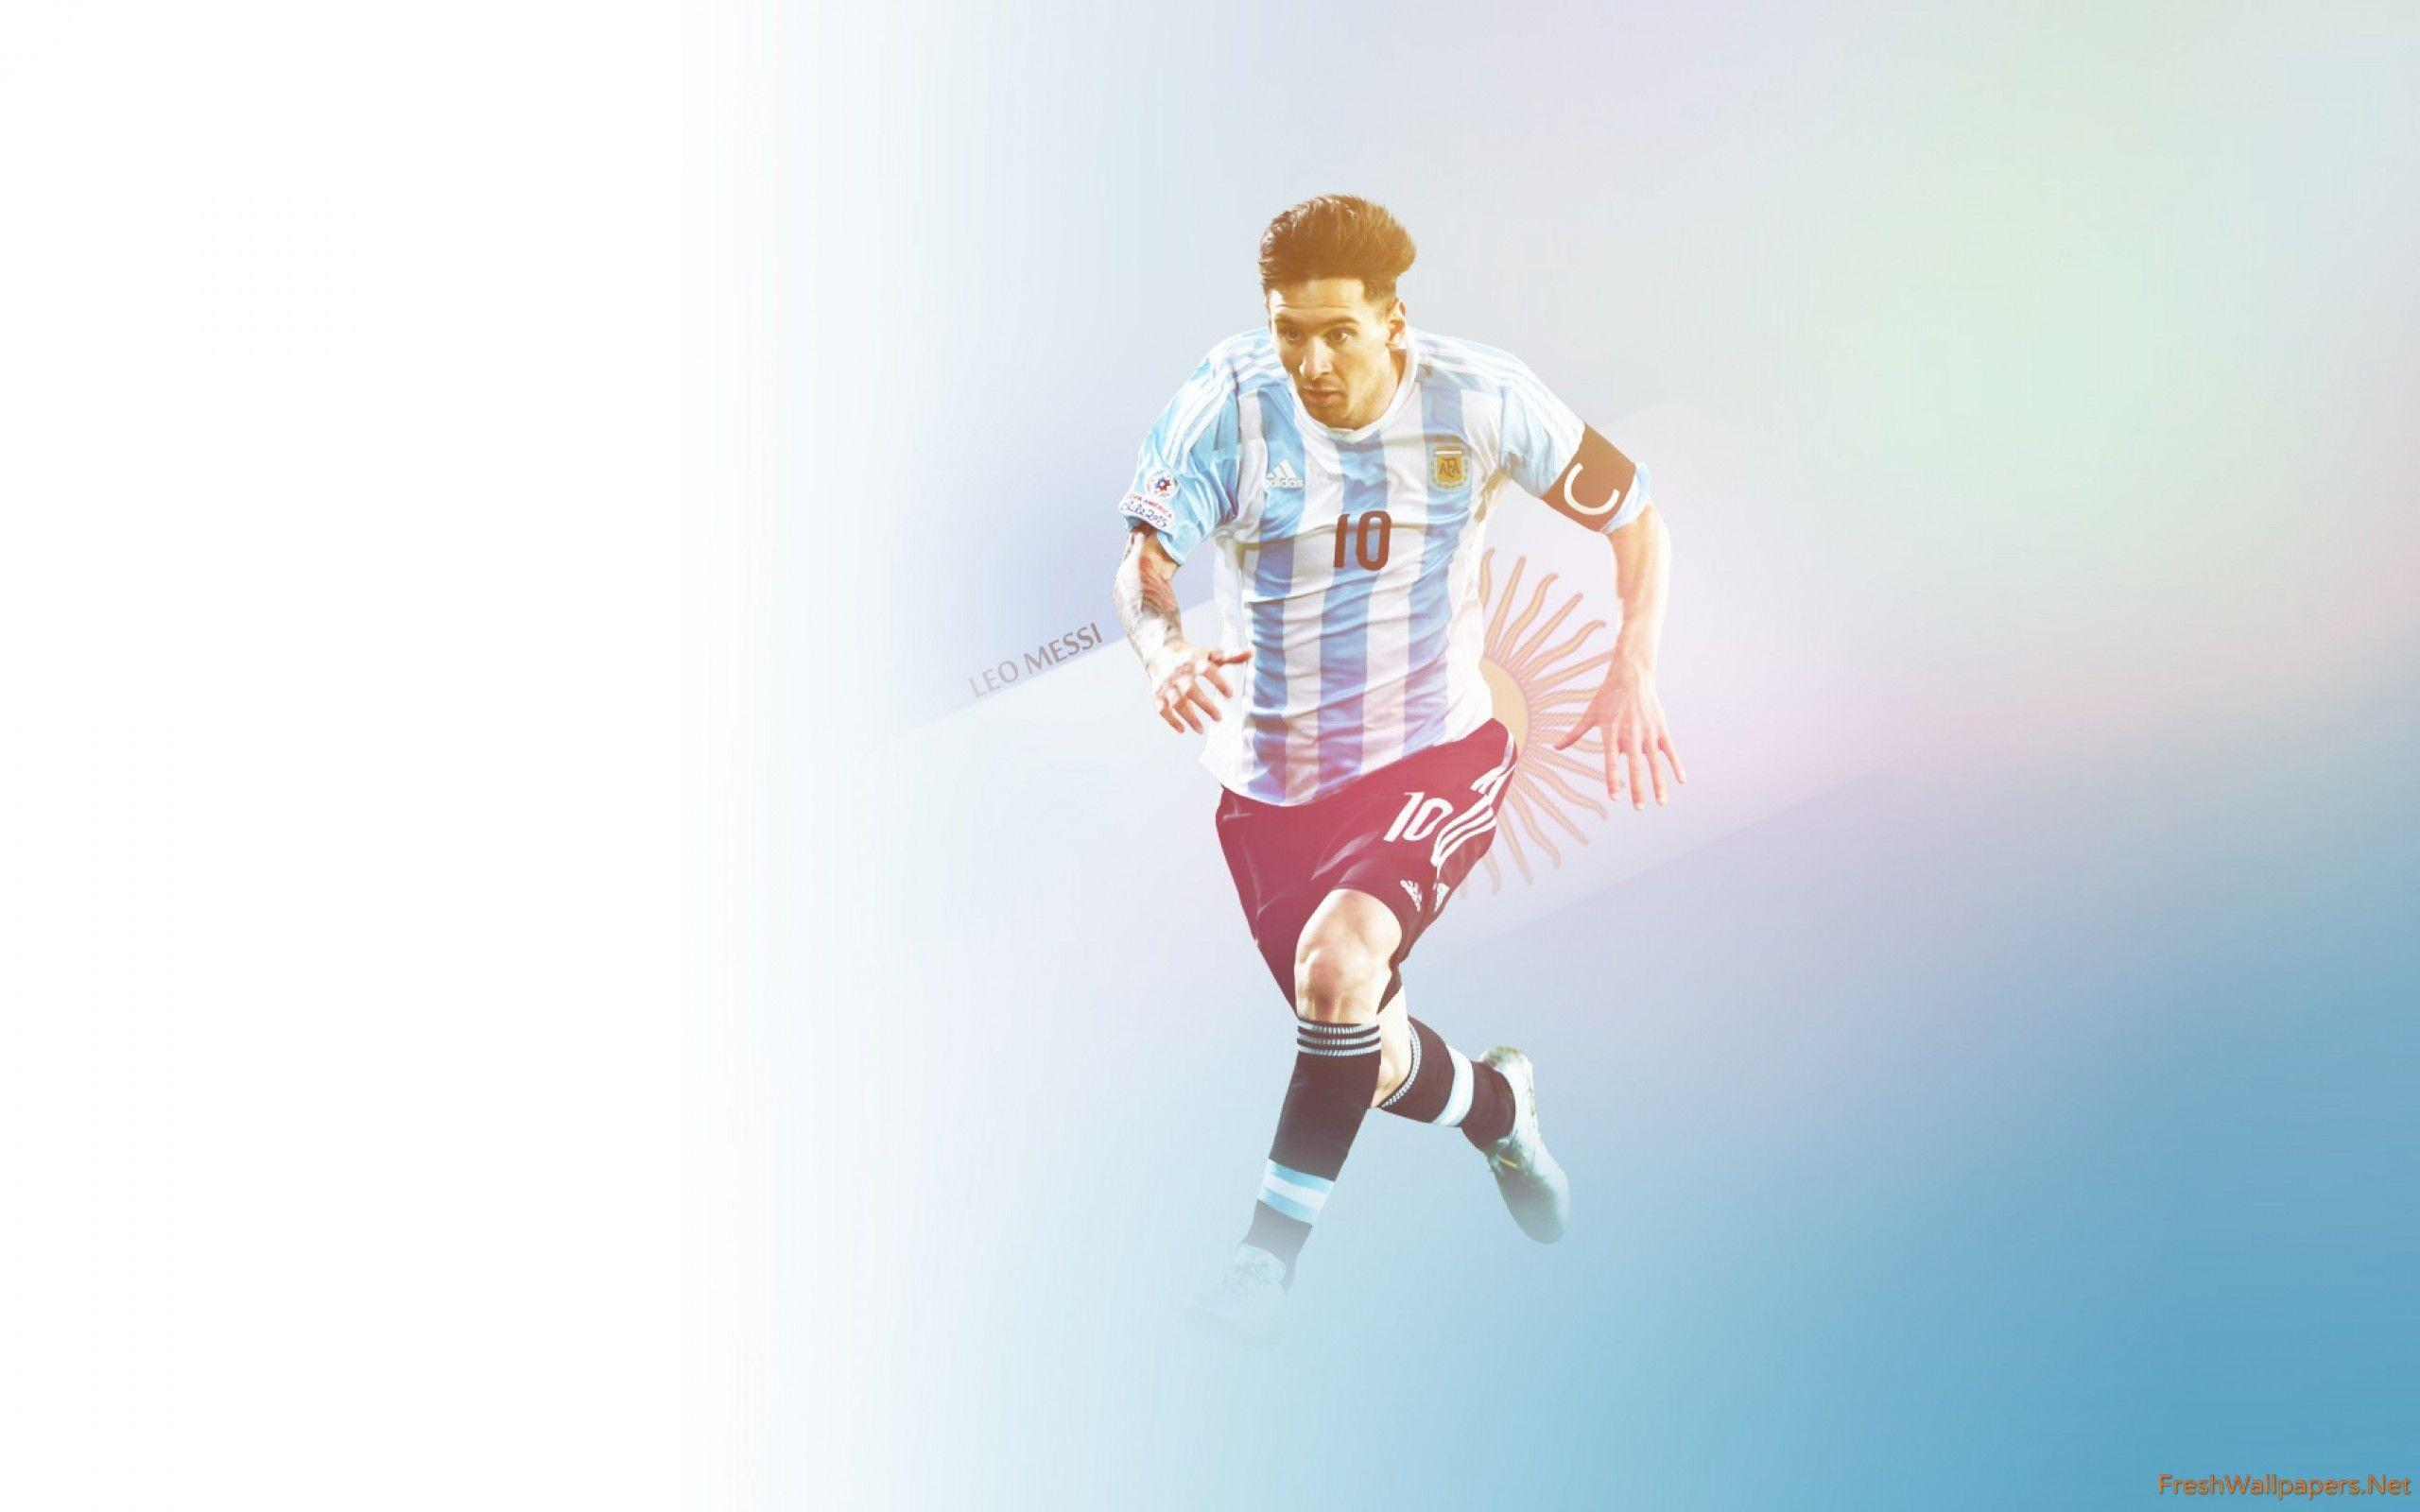 Lionel Messi Argentina 2015 wallpapers | Freshwallpapers